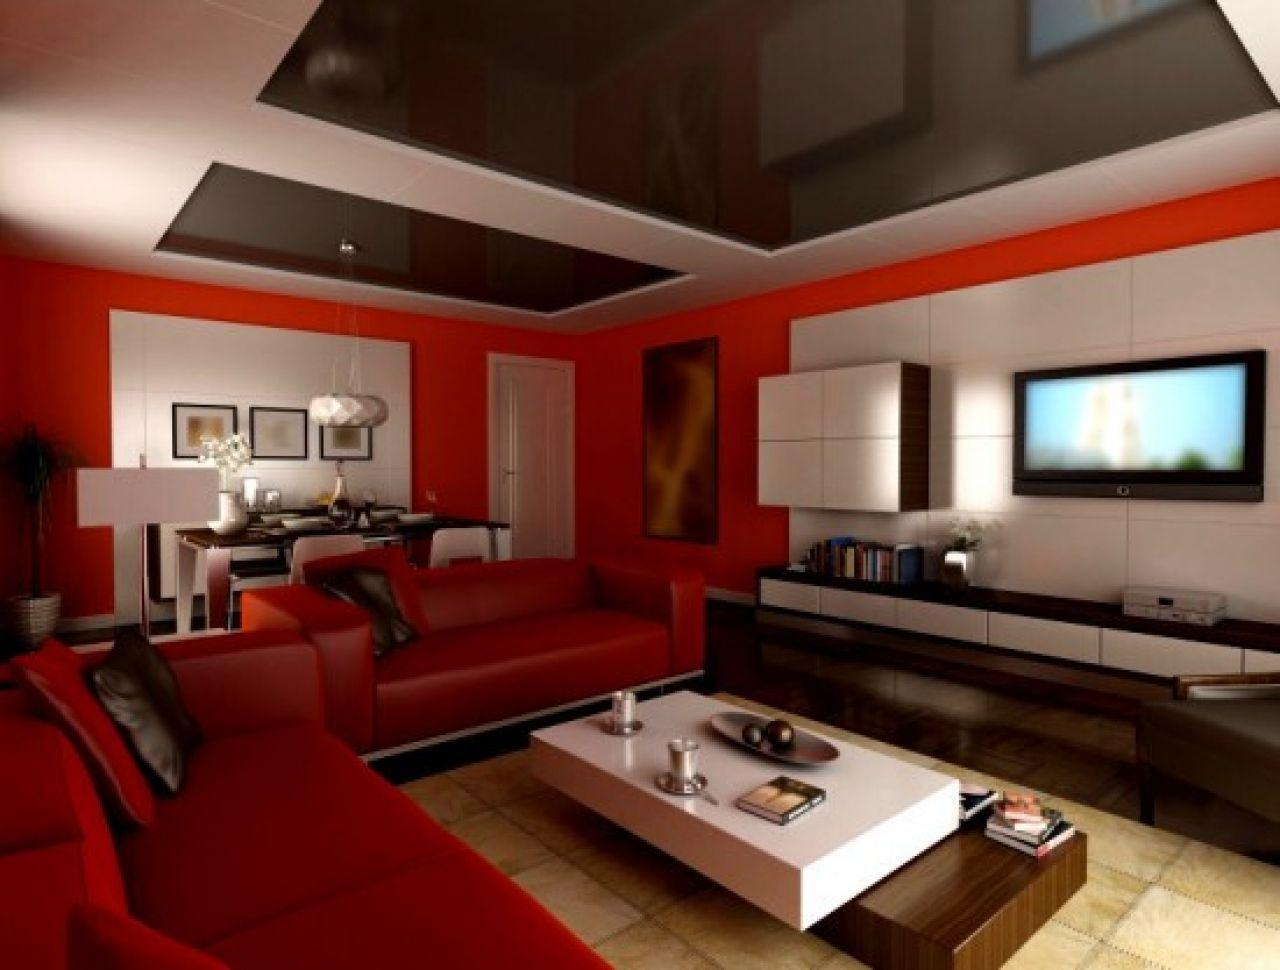 Modern Colors For Living Room Walls Modern Living Room Painting Ideas With Leather Red Leather Sofa